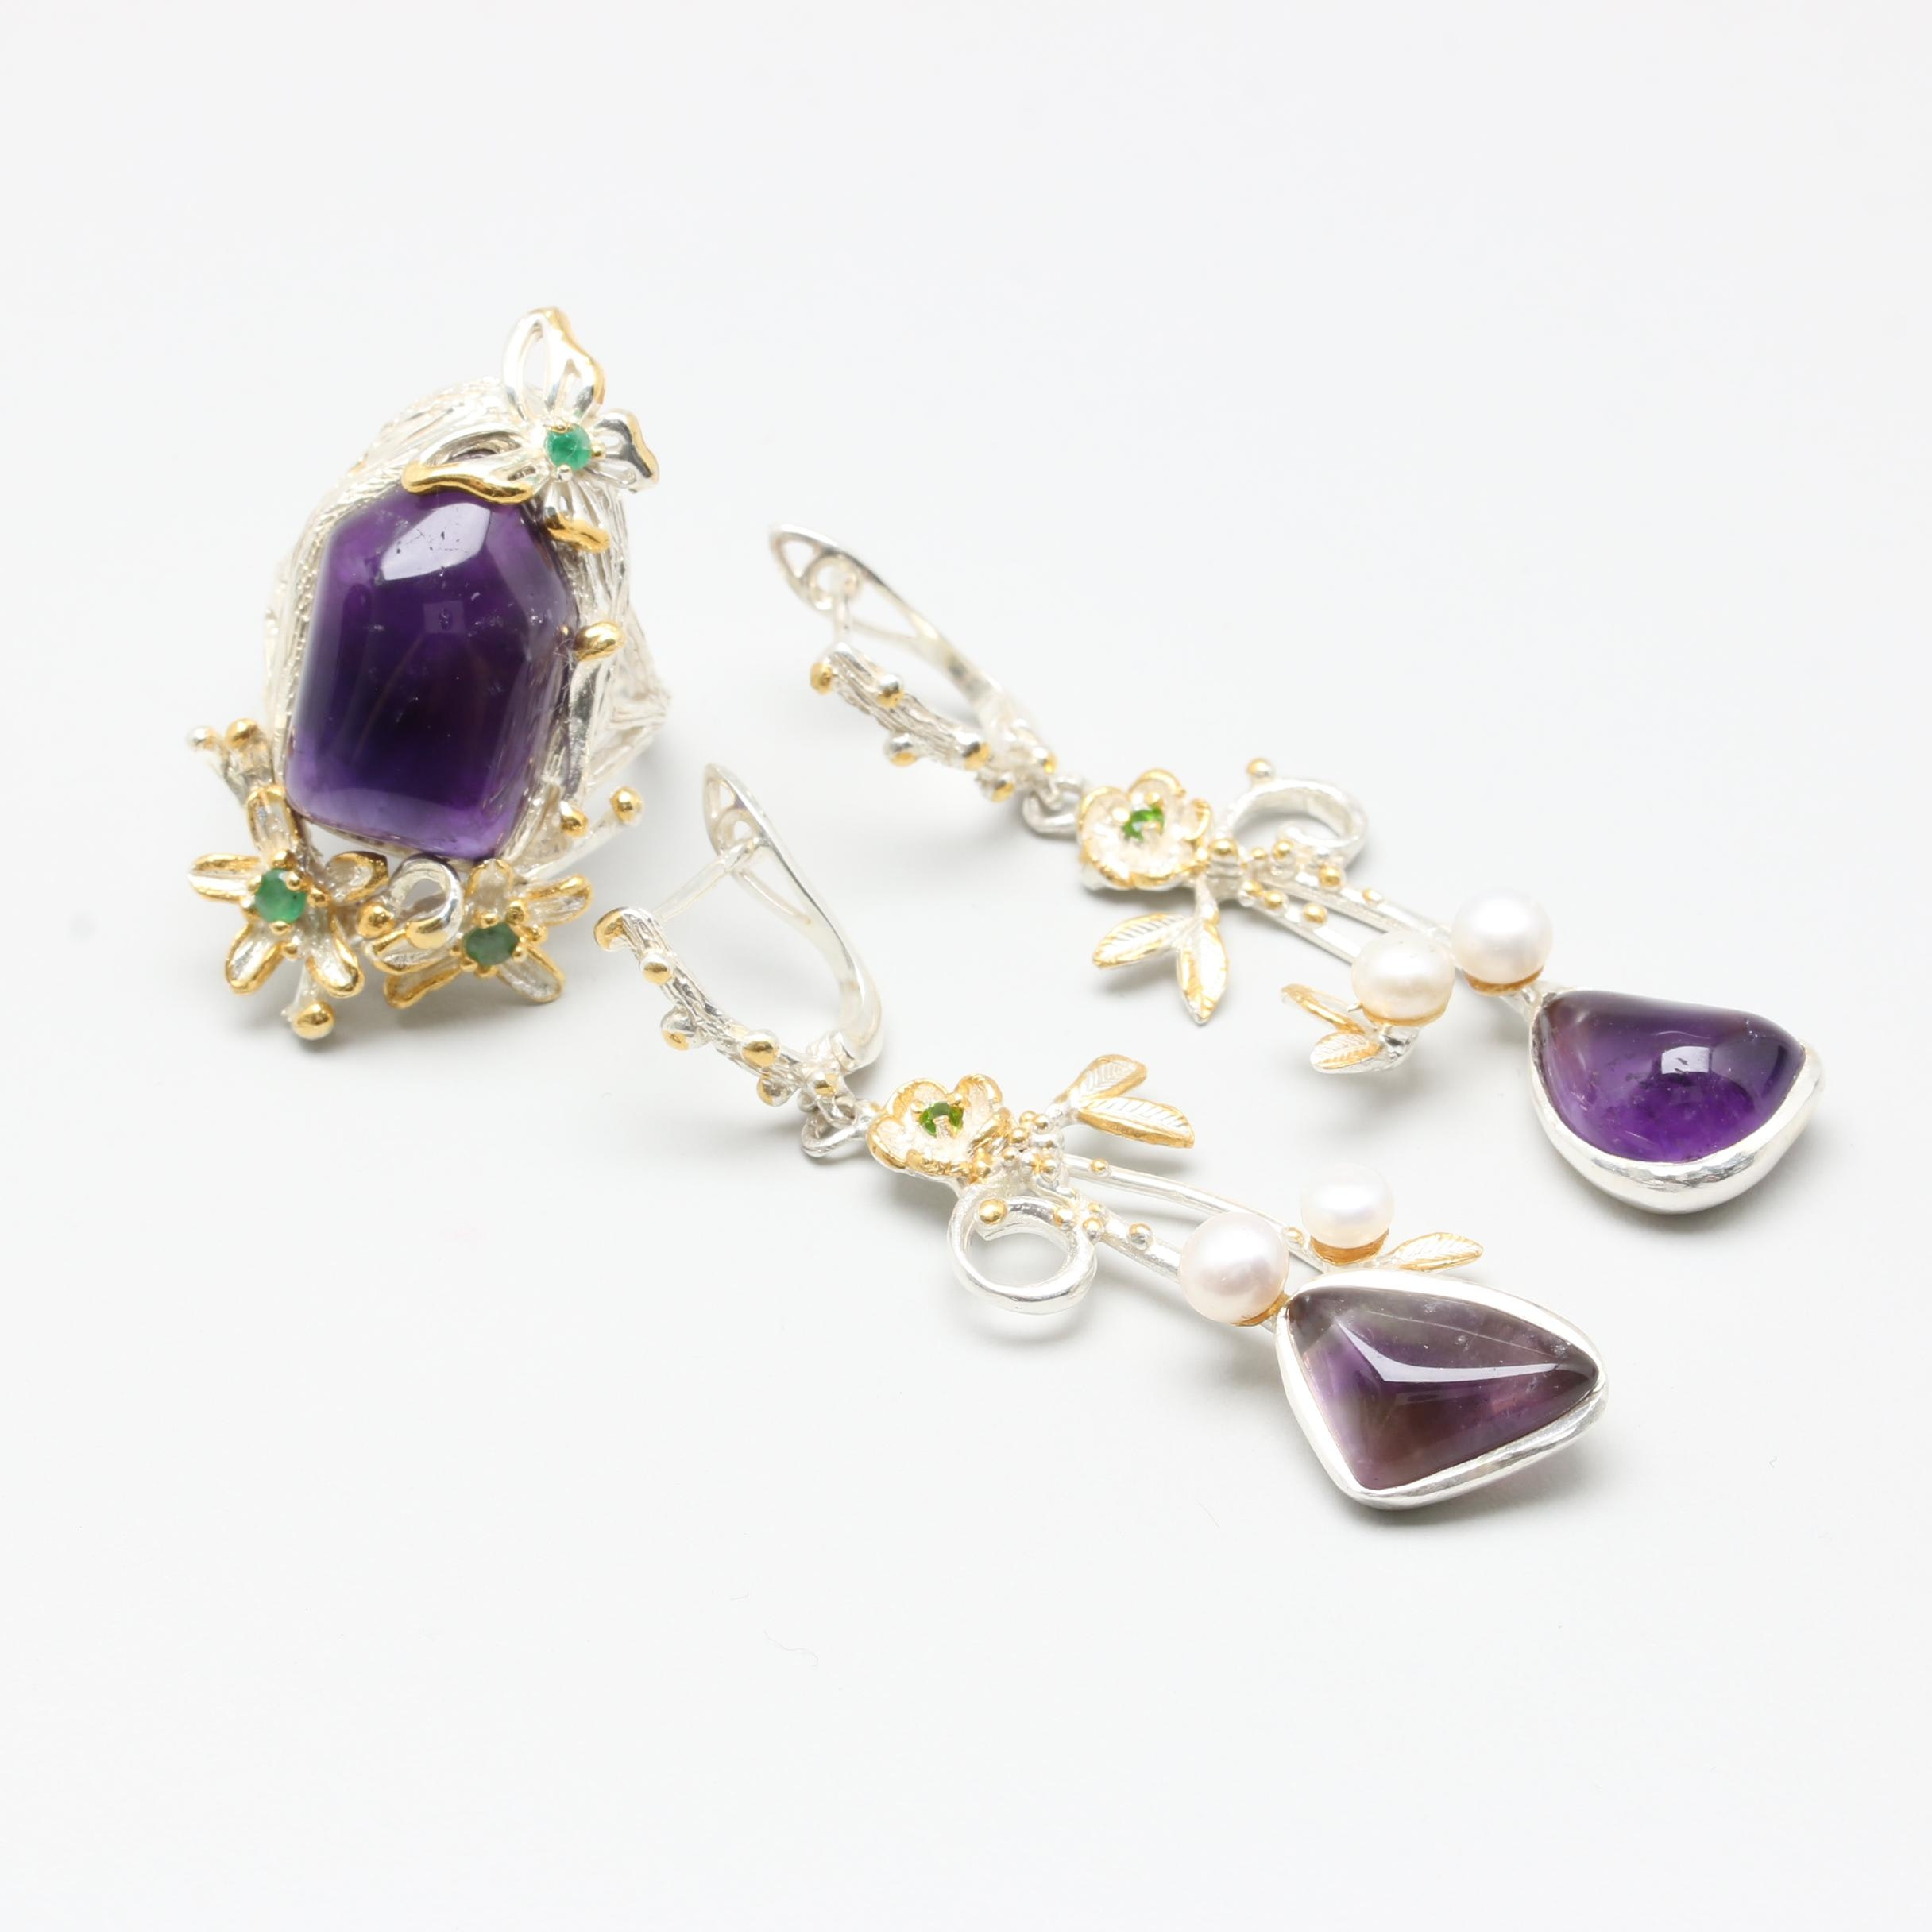 Sterling Silver Gemstone Jewelry Including Amethyst and Gold Wash Accents